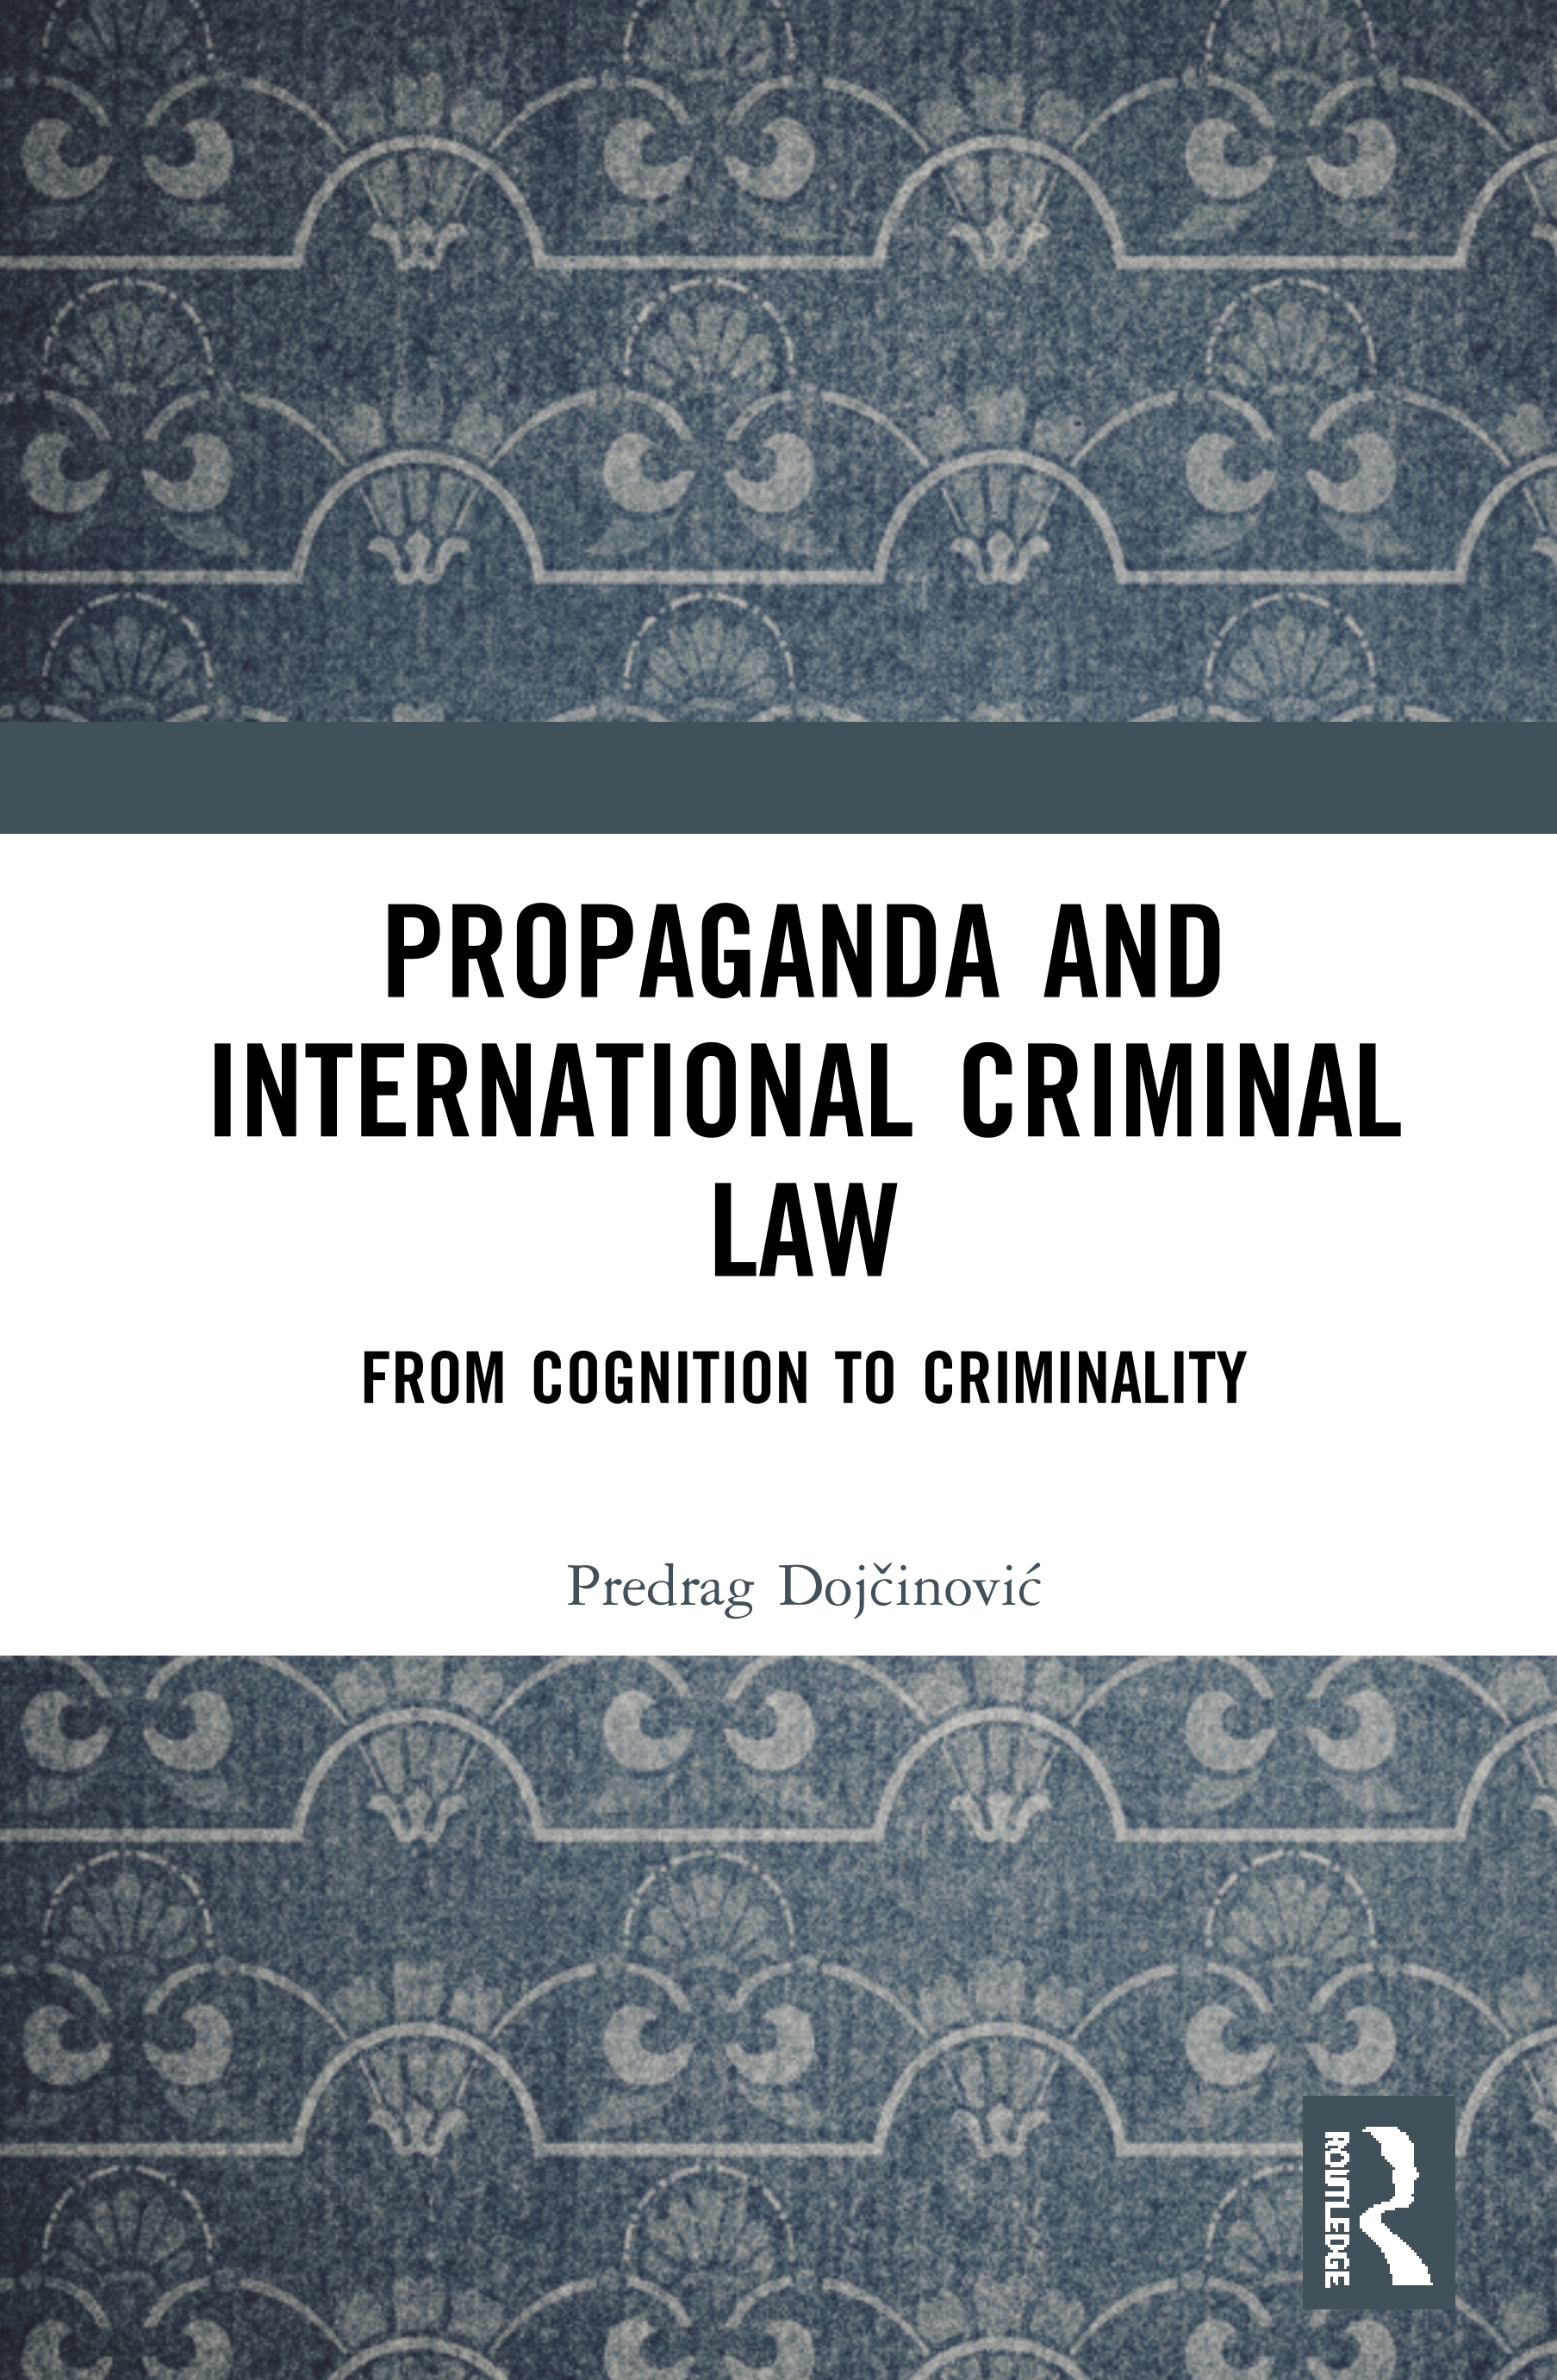 Propaganda and International Criminal Law: From Cognition to Criminality book cover